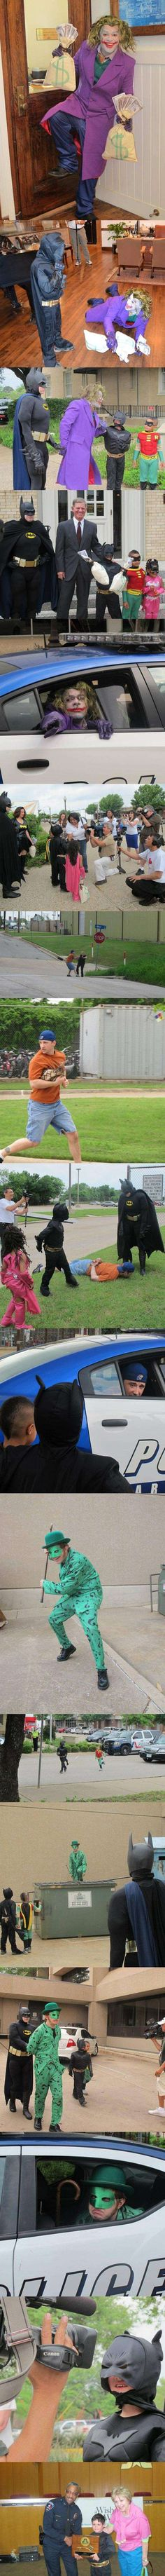 "Local police help 7 y.o. leukemia patient play ""Batman"". Faith in humainty = restored"